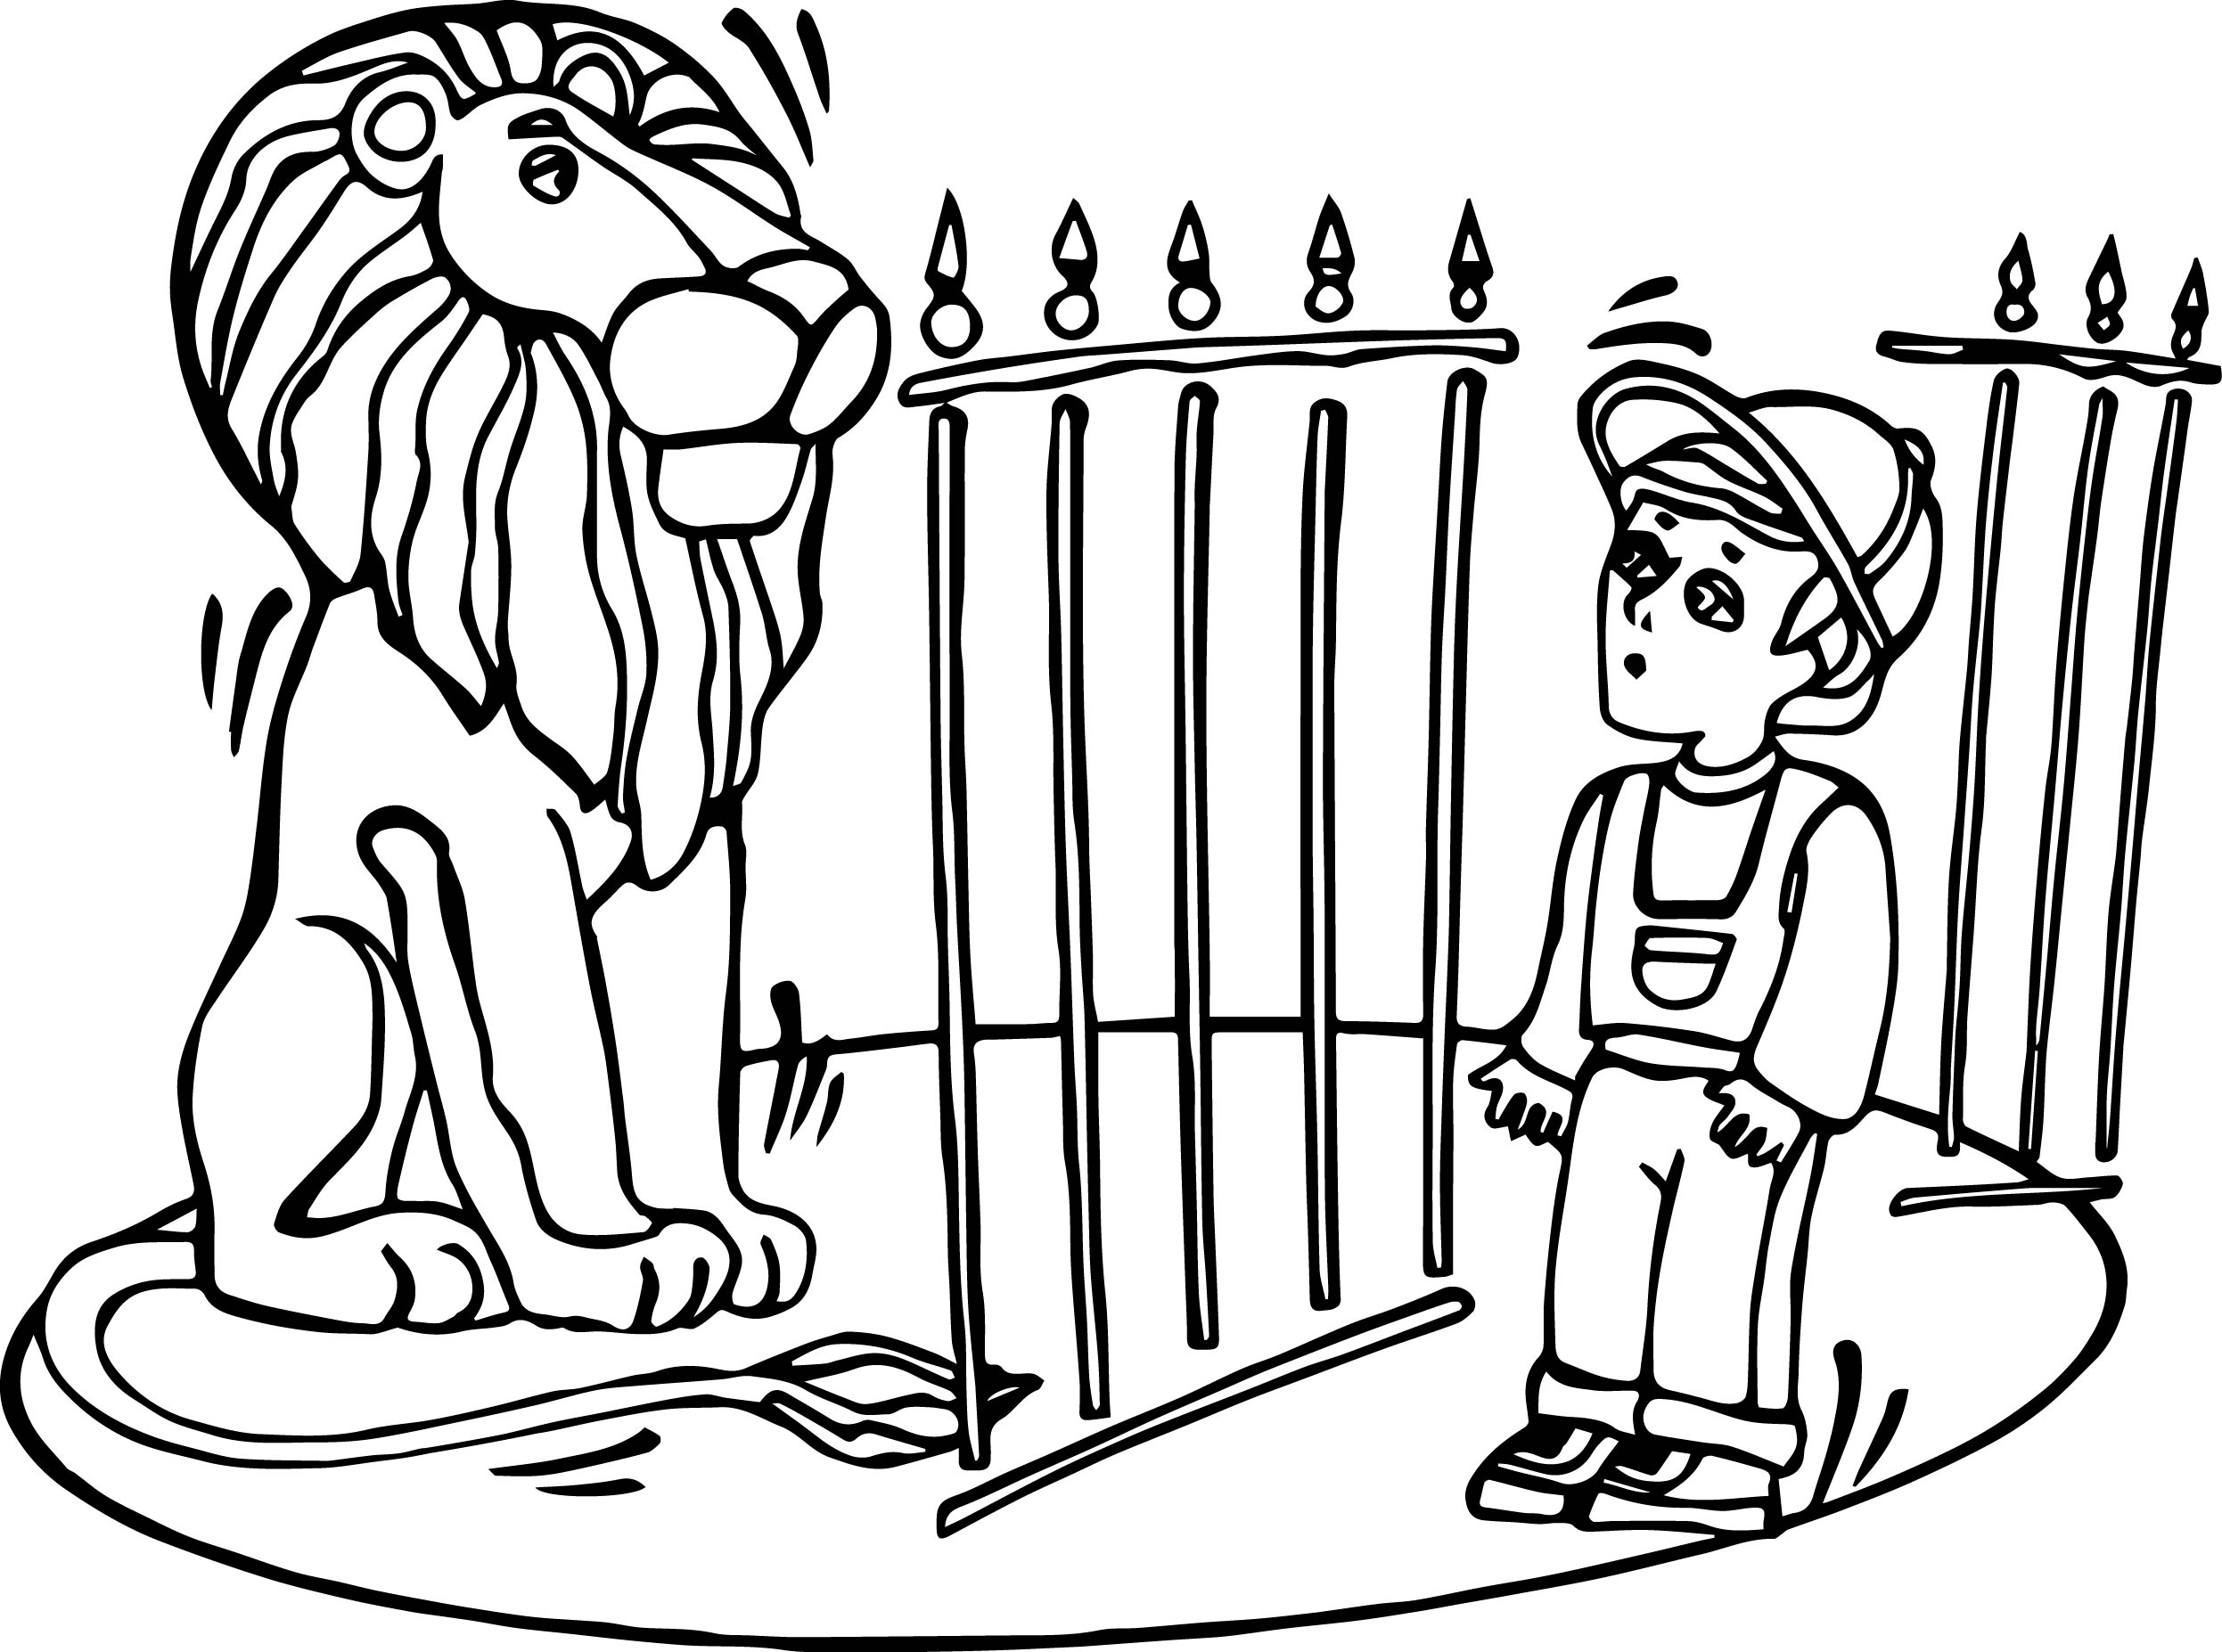 Zoo Lion And Child Coloring Page | Wecoloringpage.com